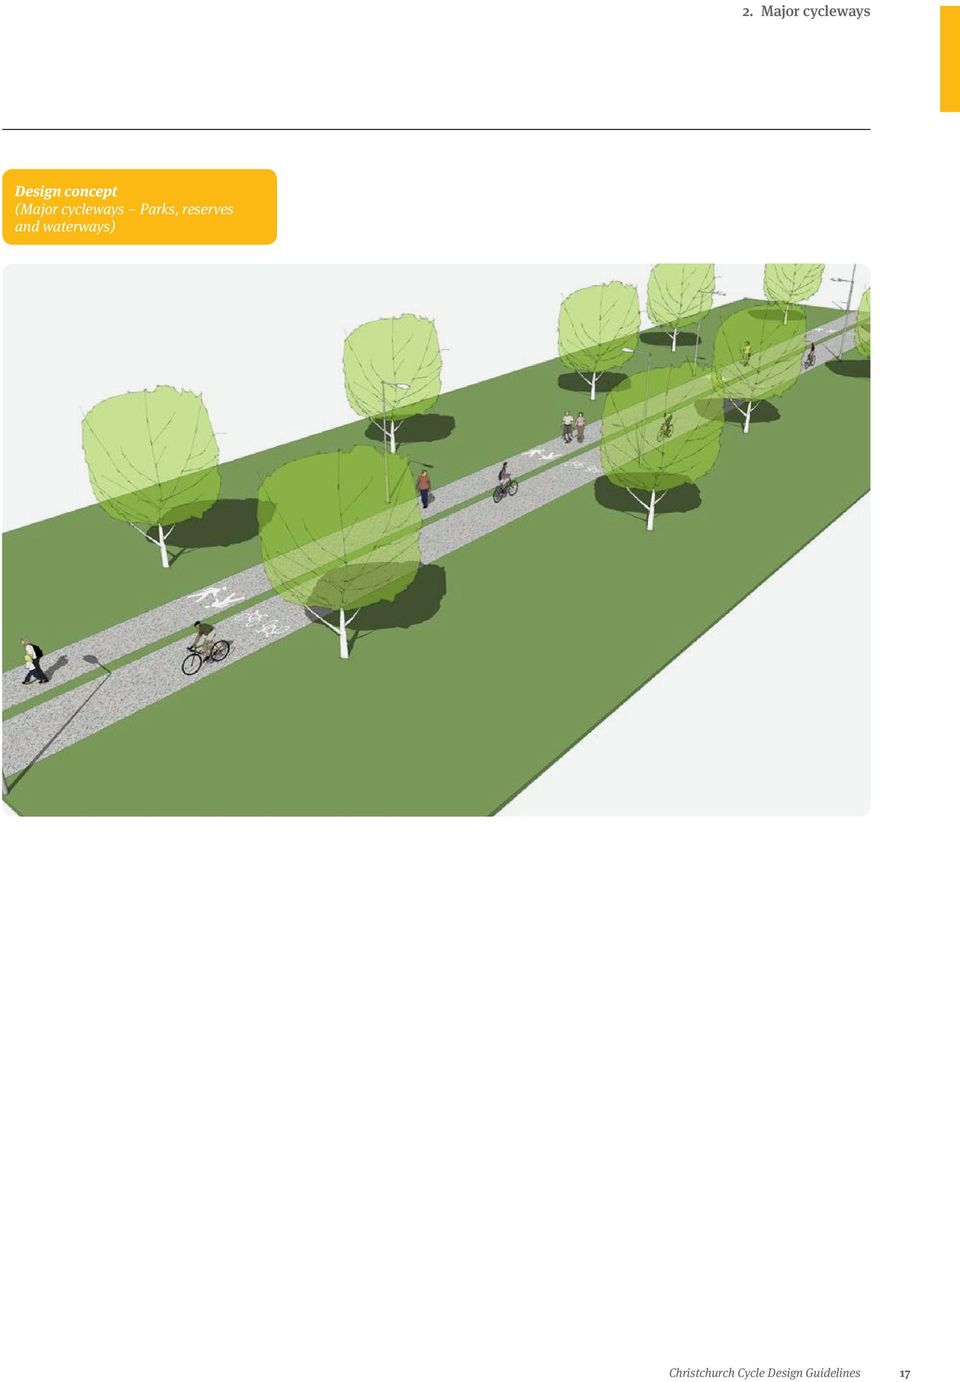 (Major cycleways